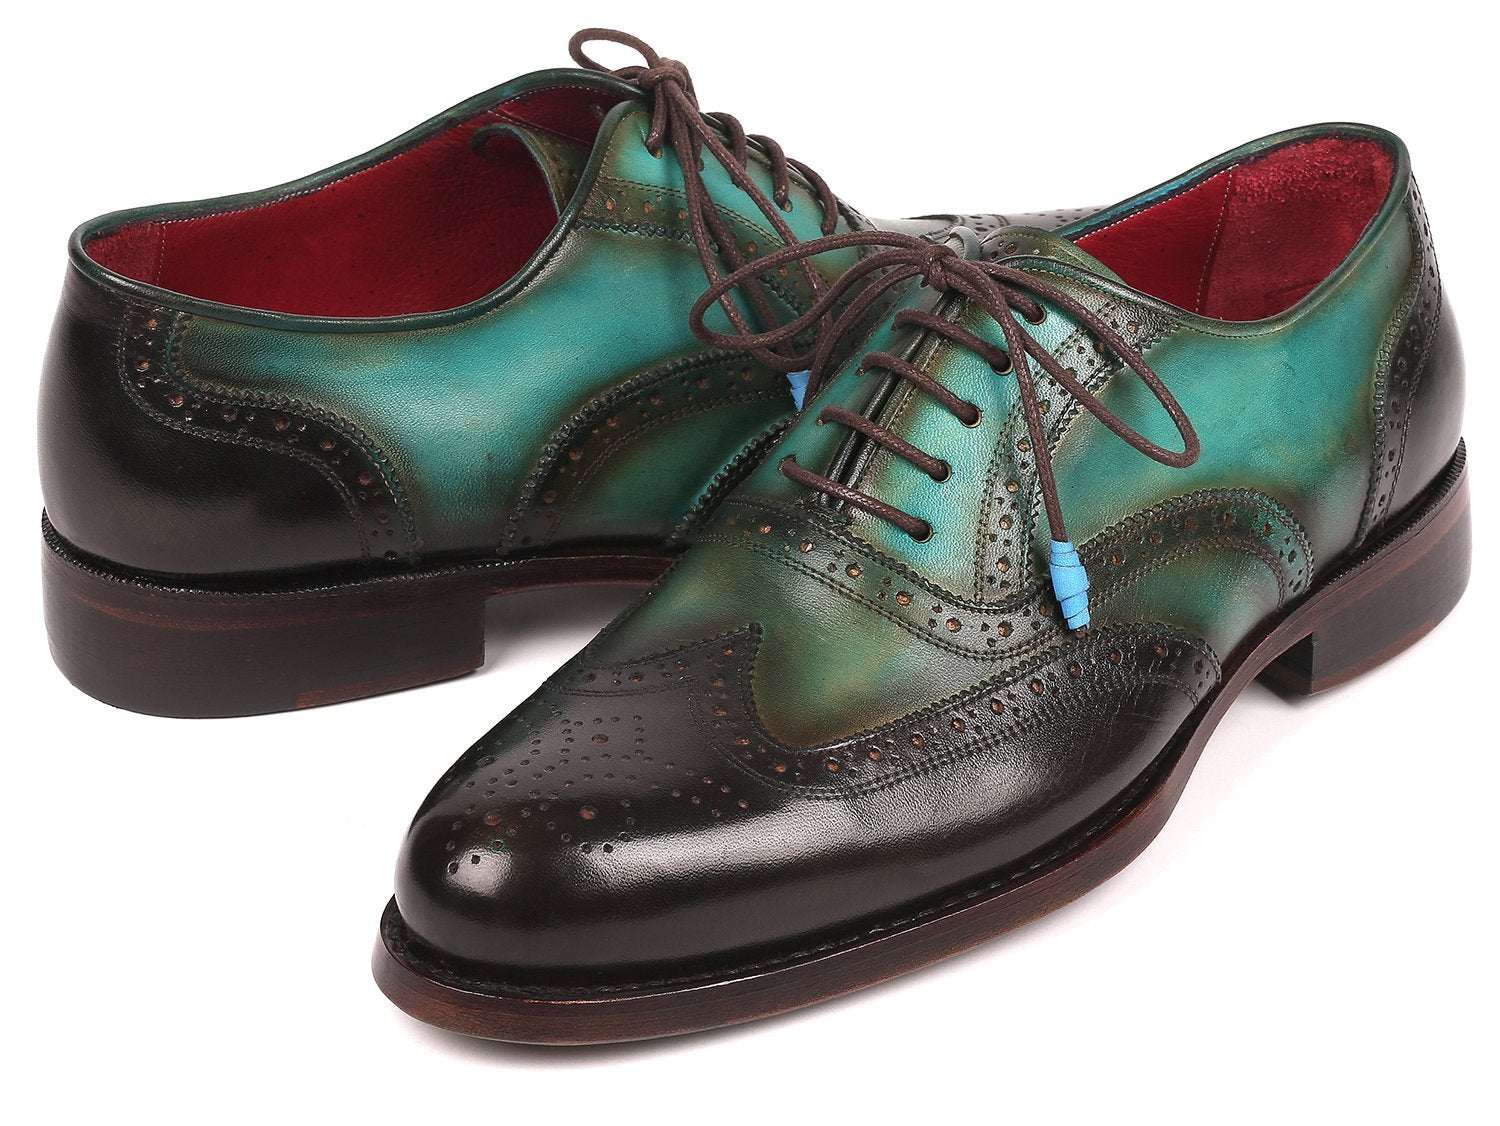 Paul Parkman Brown & Green Wingtip Oxfords Goodyear Welted (ID#027-BRWGRN)